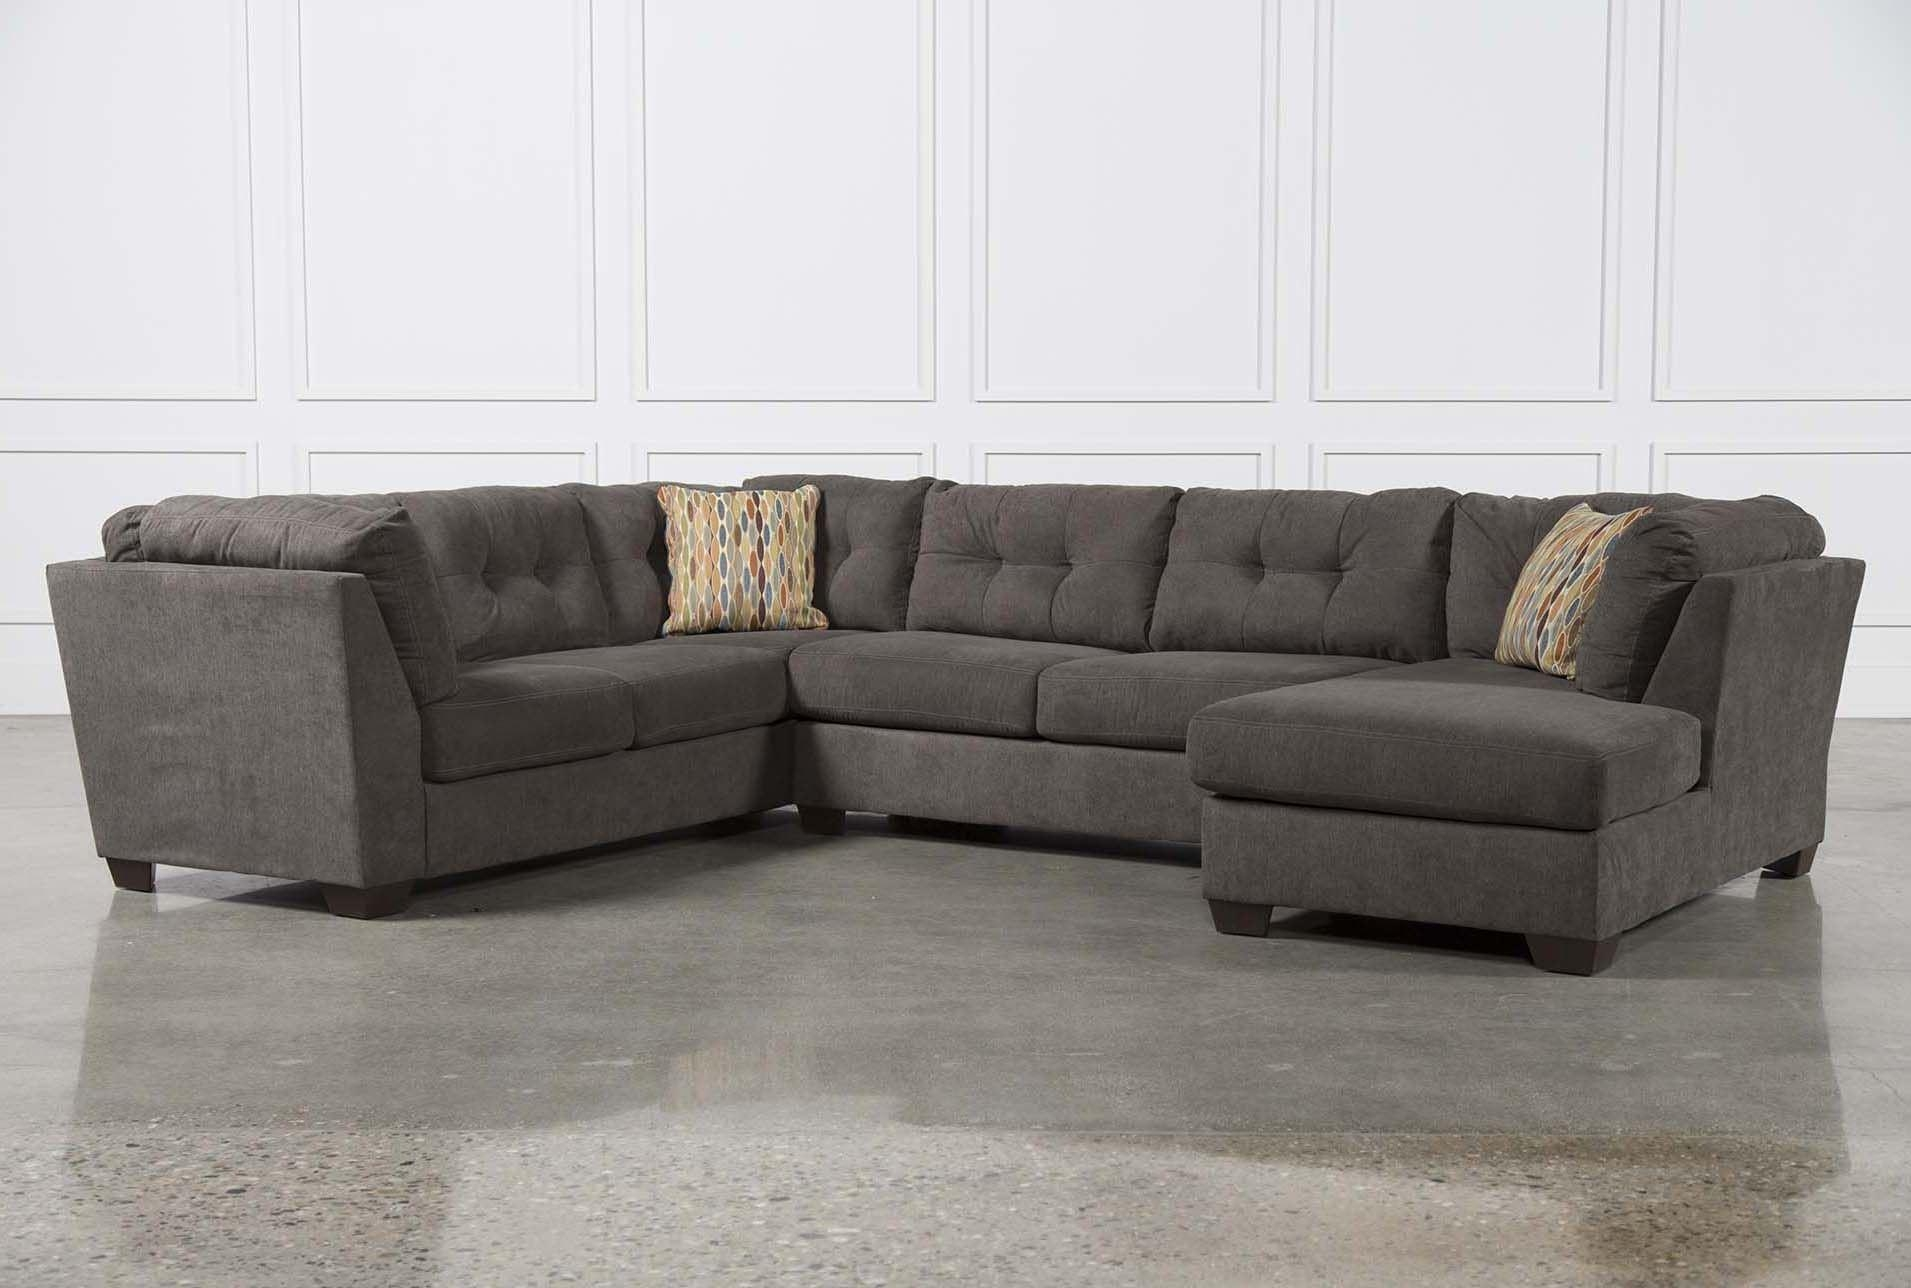 Furniture: Comfortable Deep Seat Sectional For Your Living Room Throughout Deep Seat Leather Sectional (View 11 of 15)